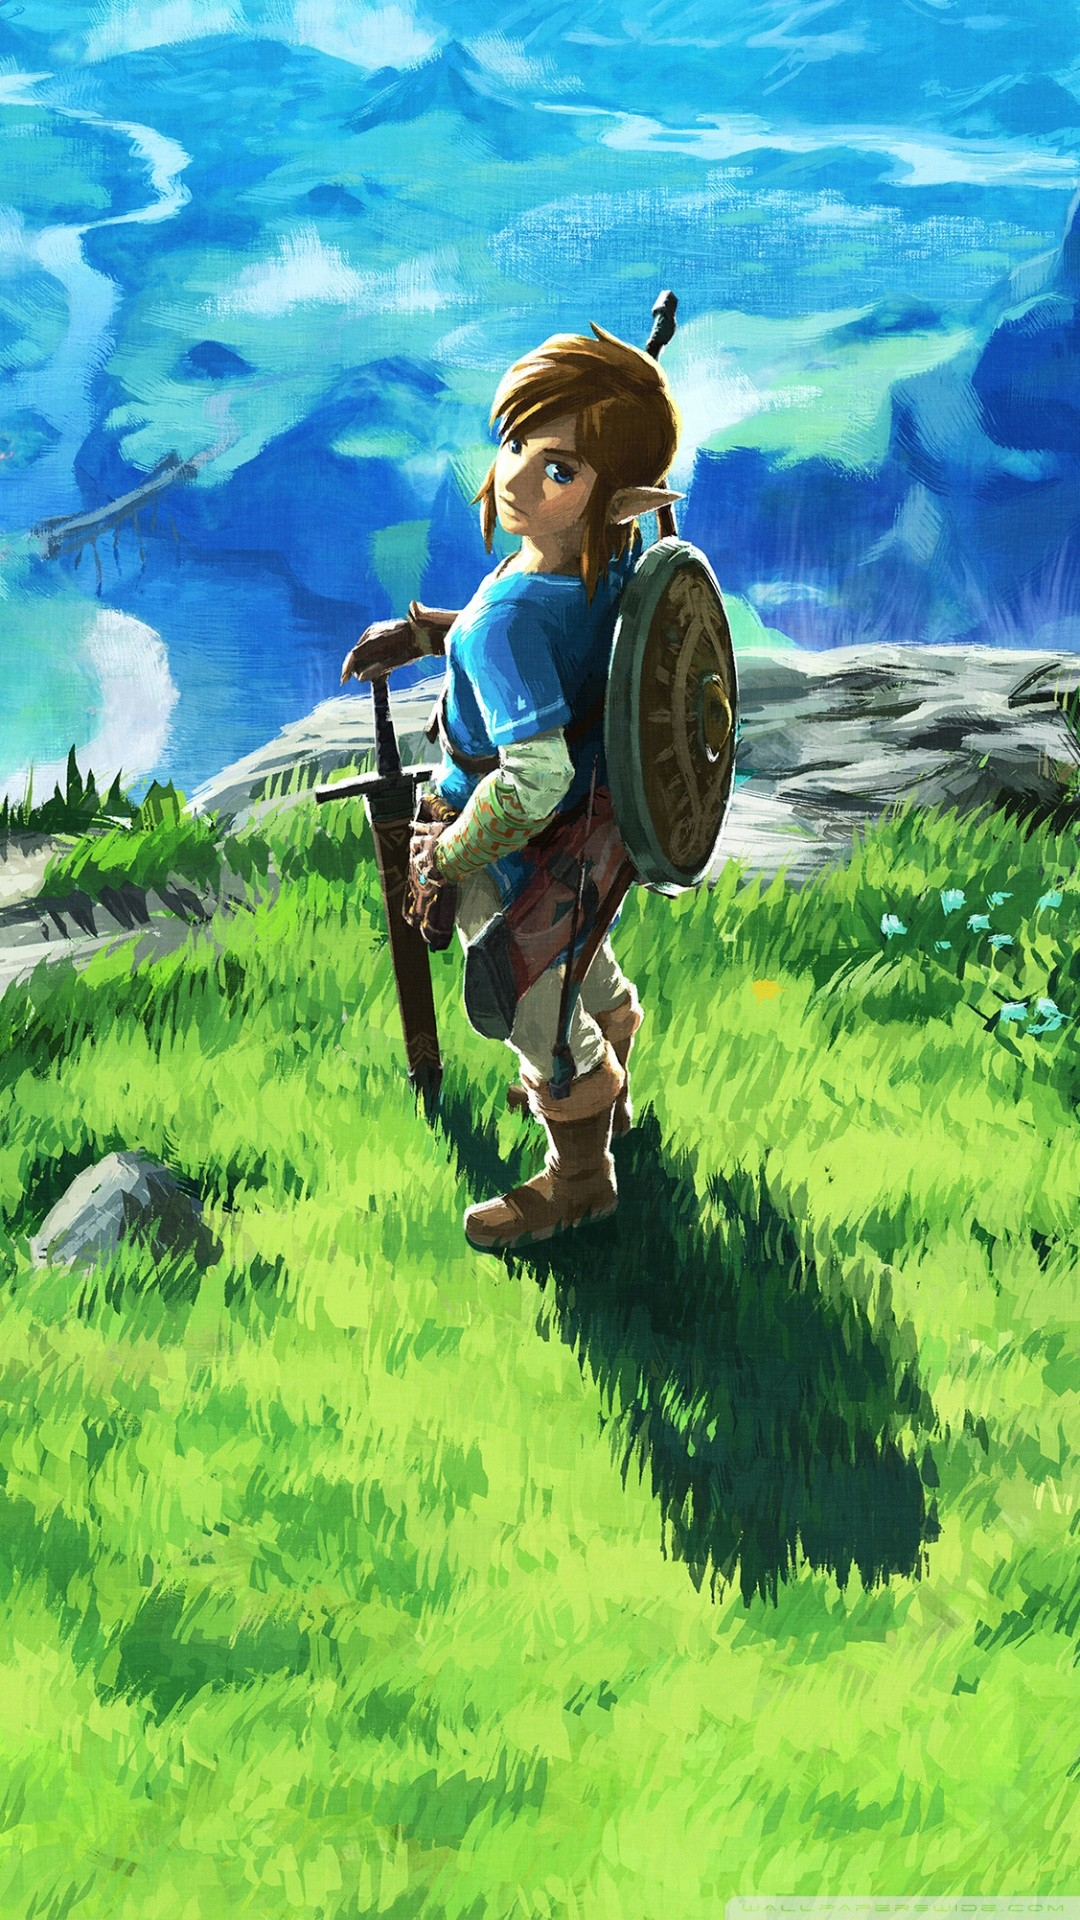 Free The Legend of Zelda Breath of the Wild phone wallpaper by chom28